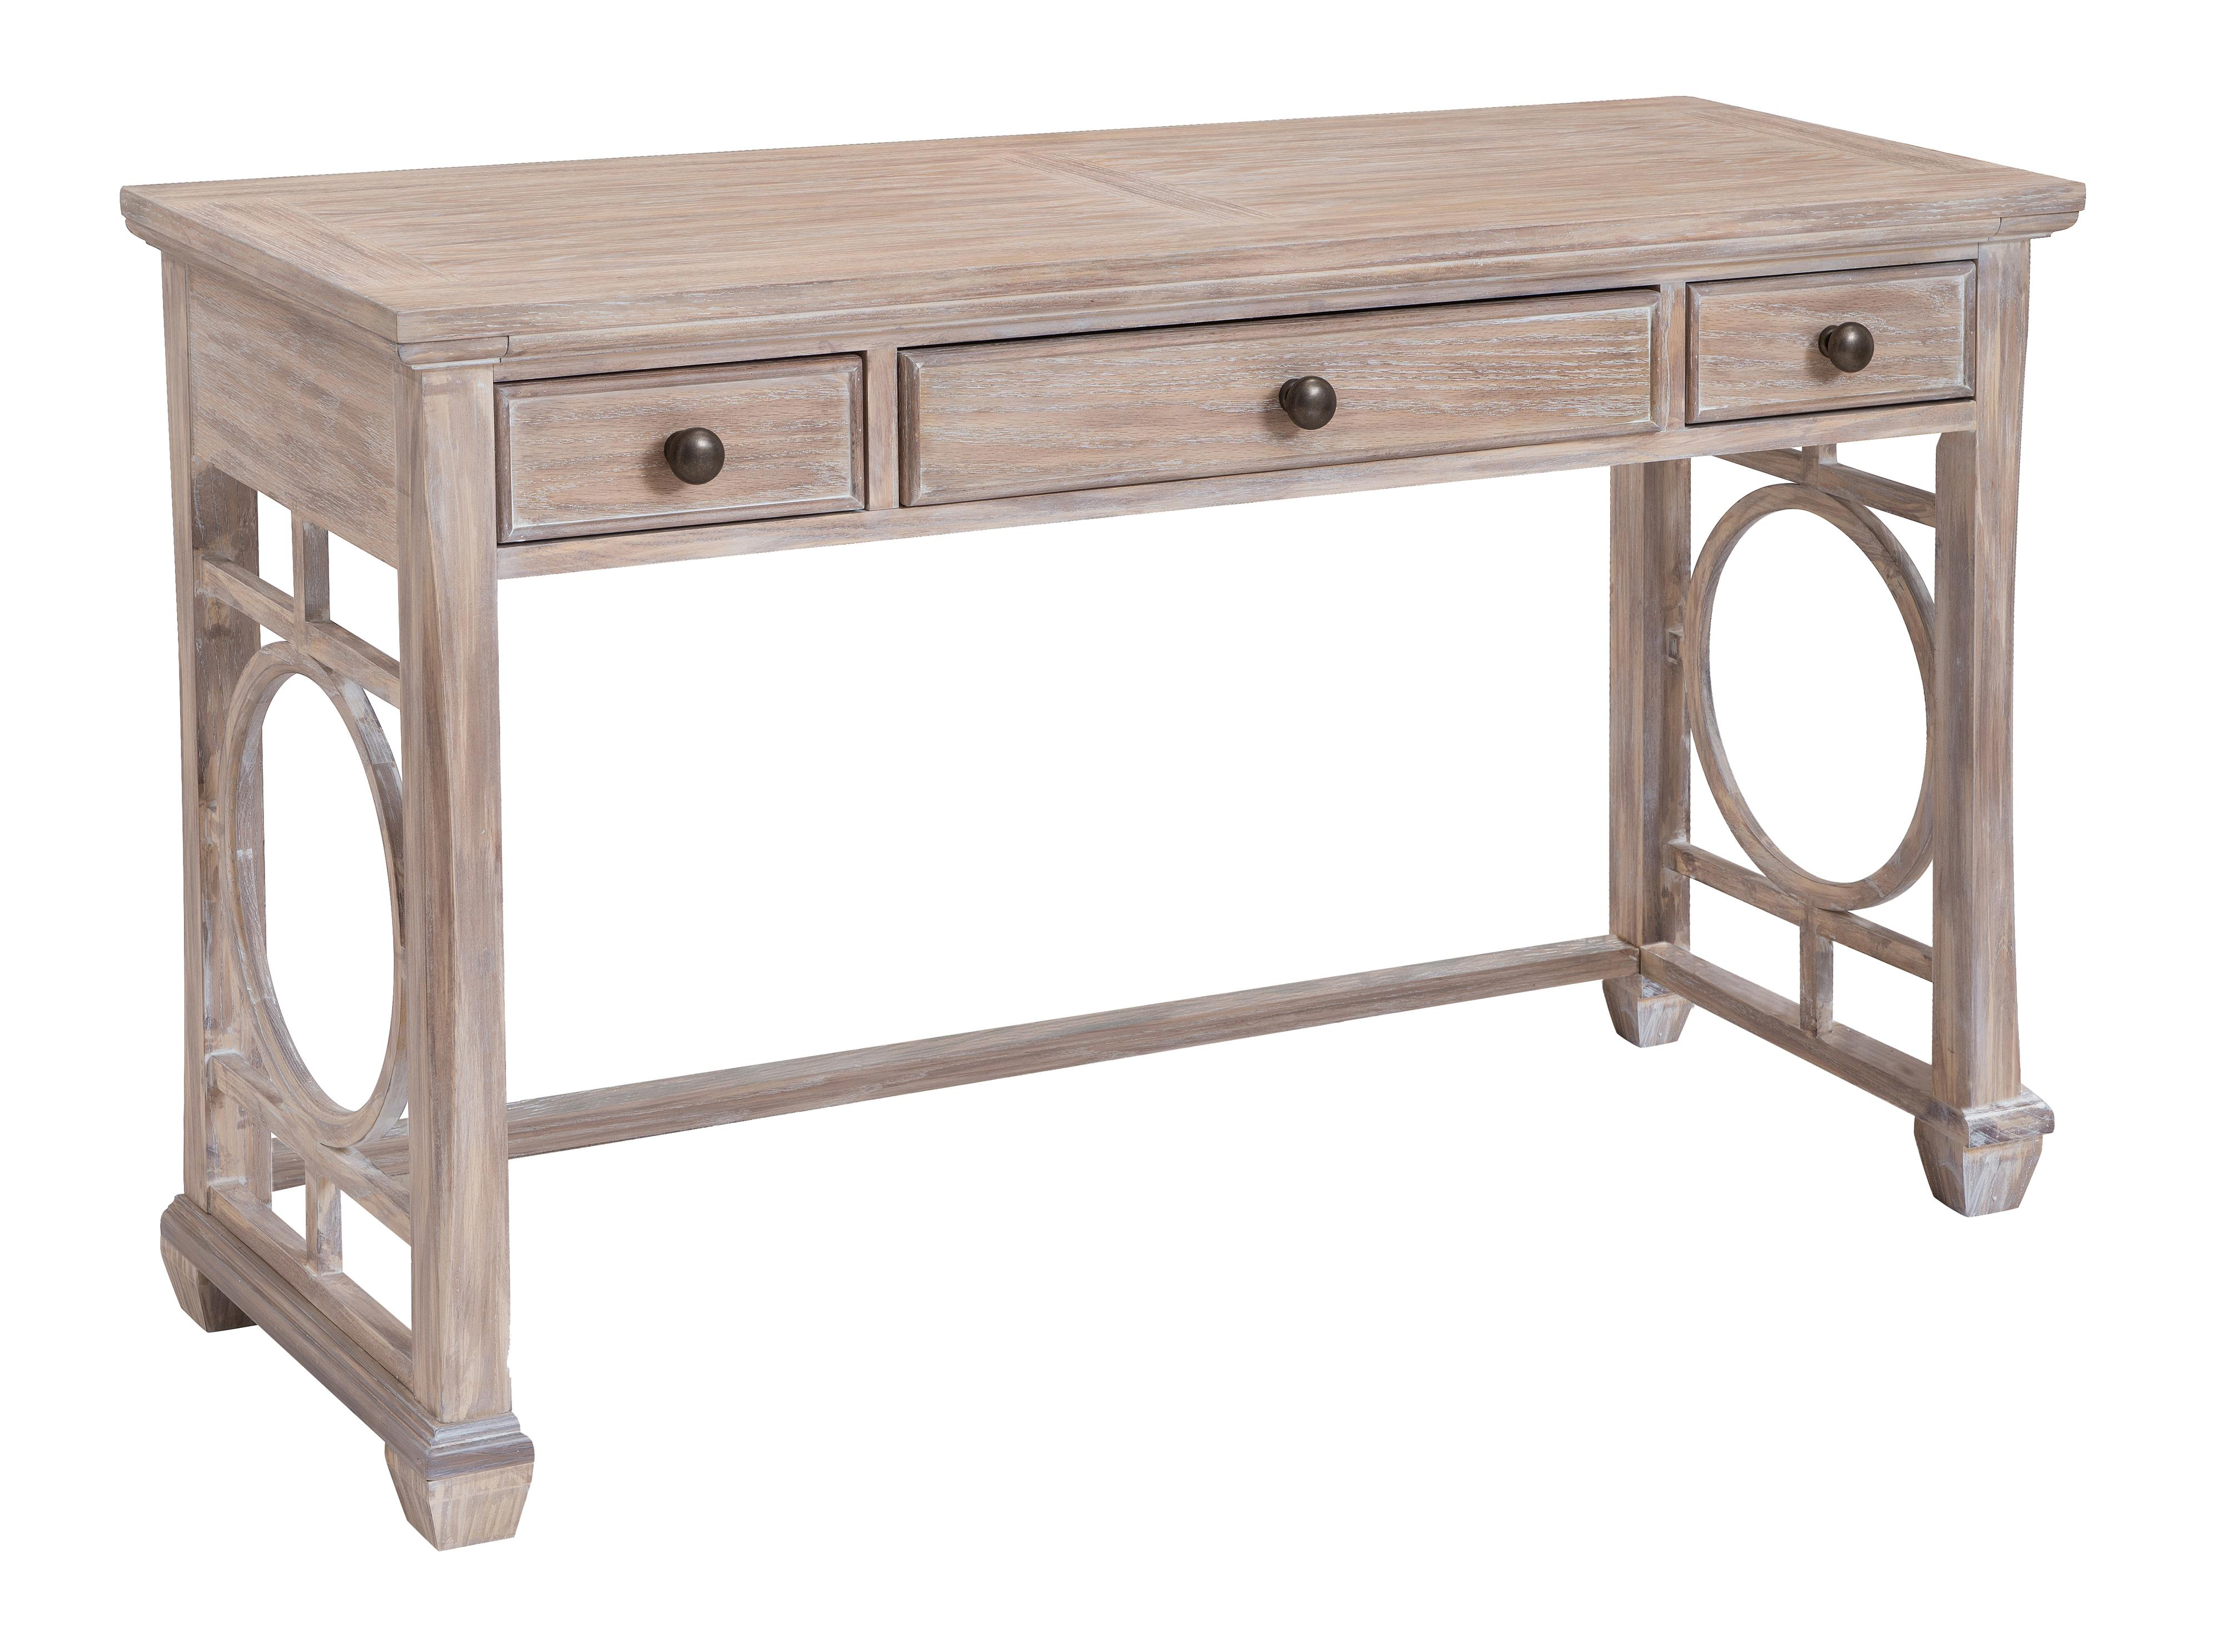 Magnussen Home Lana Rectangular Sofa Table - Item Number: T3045-73